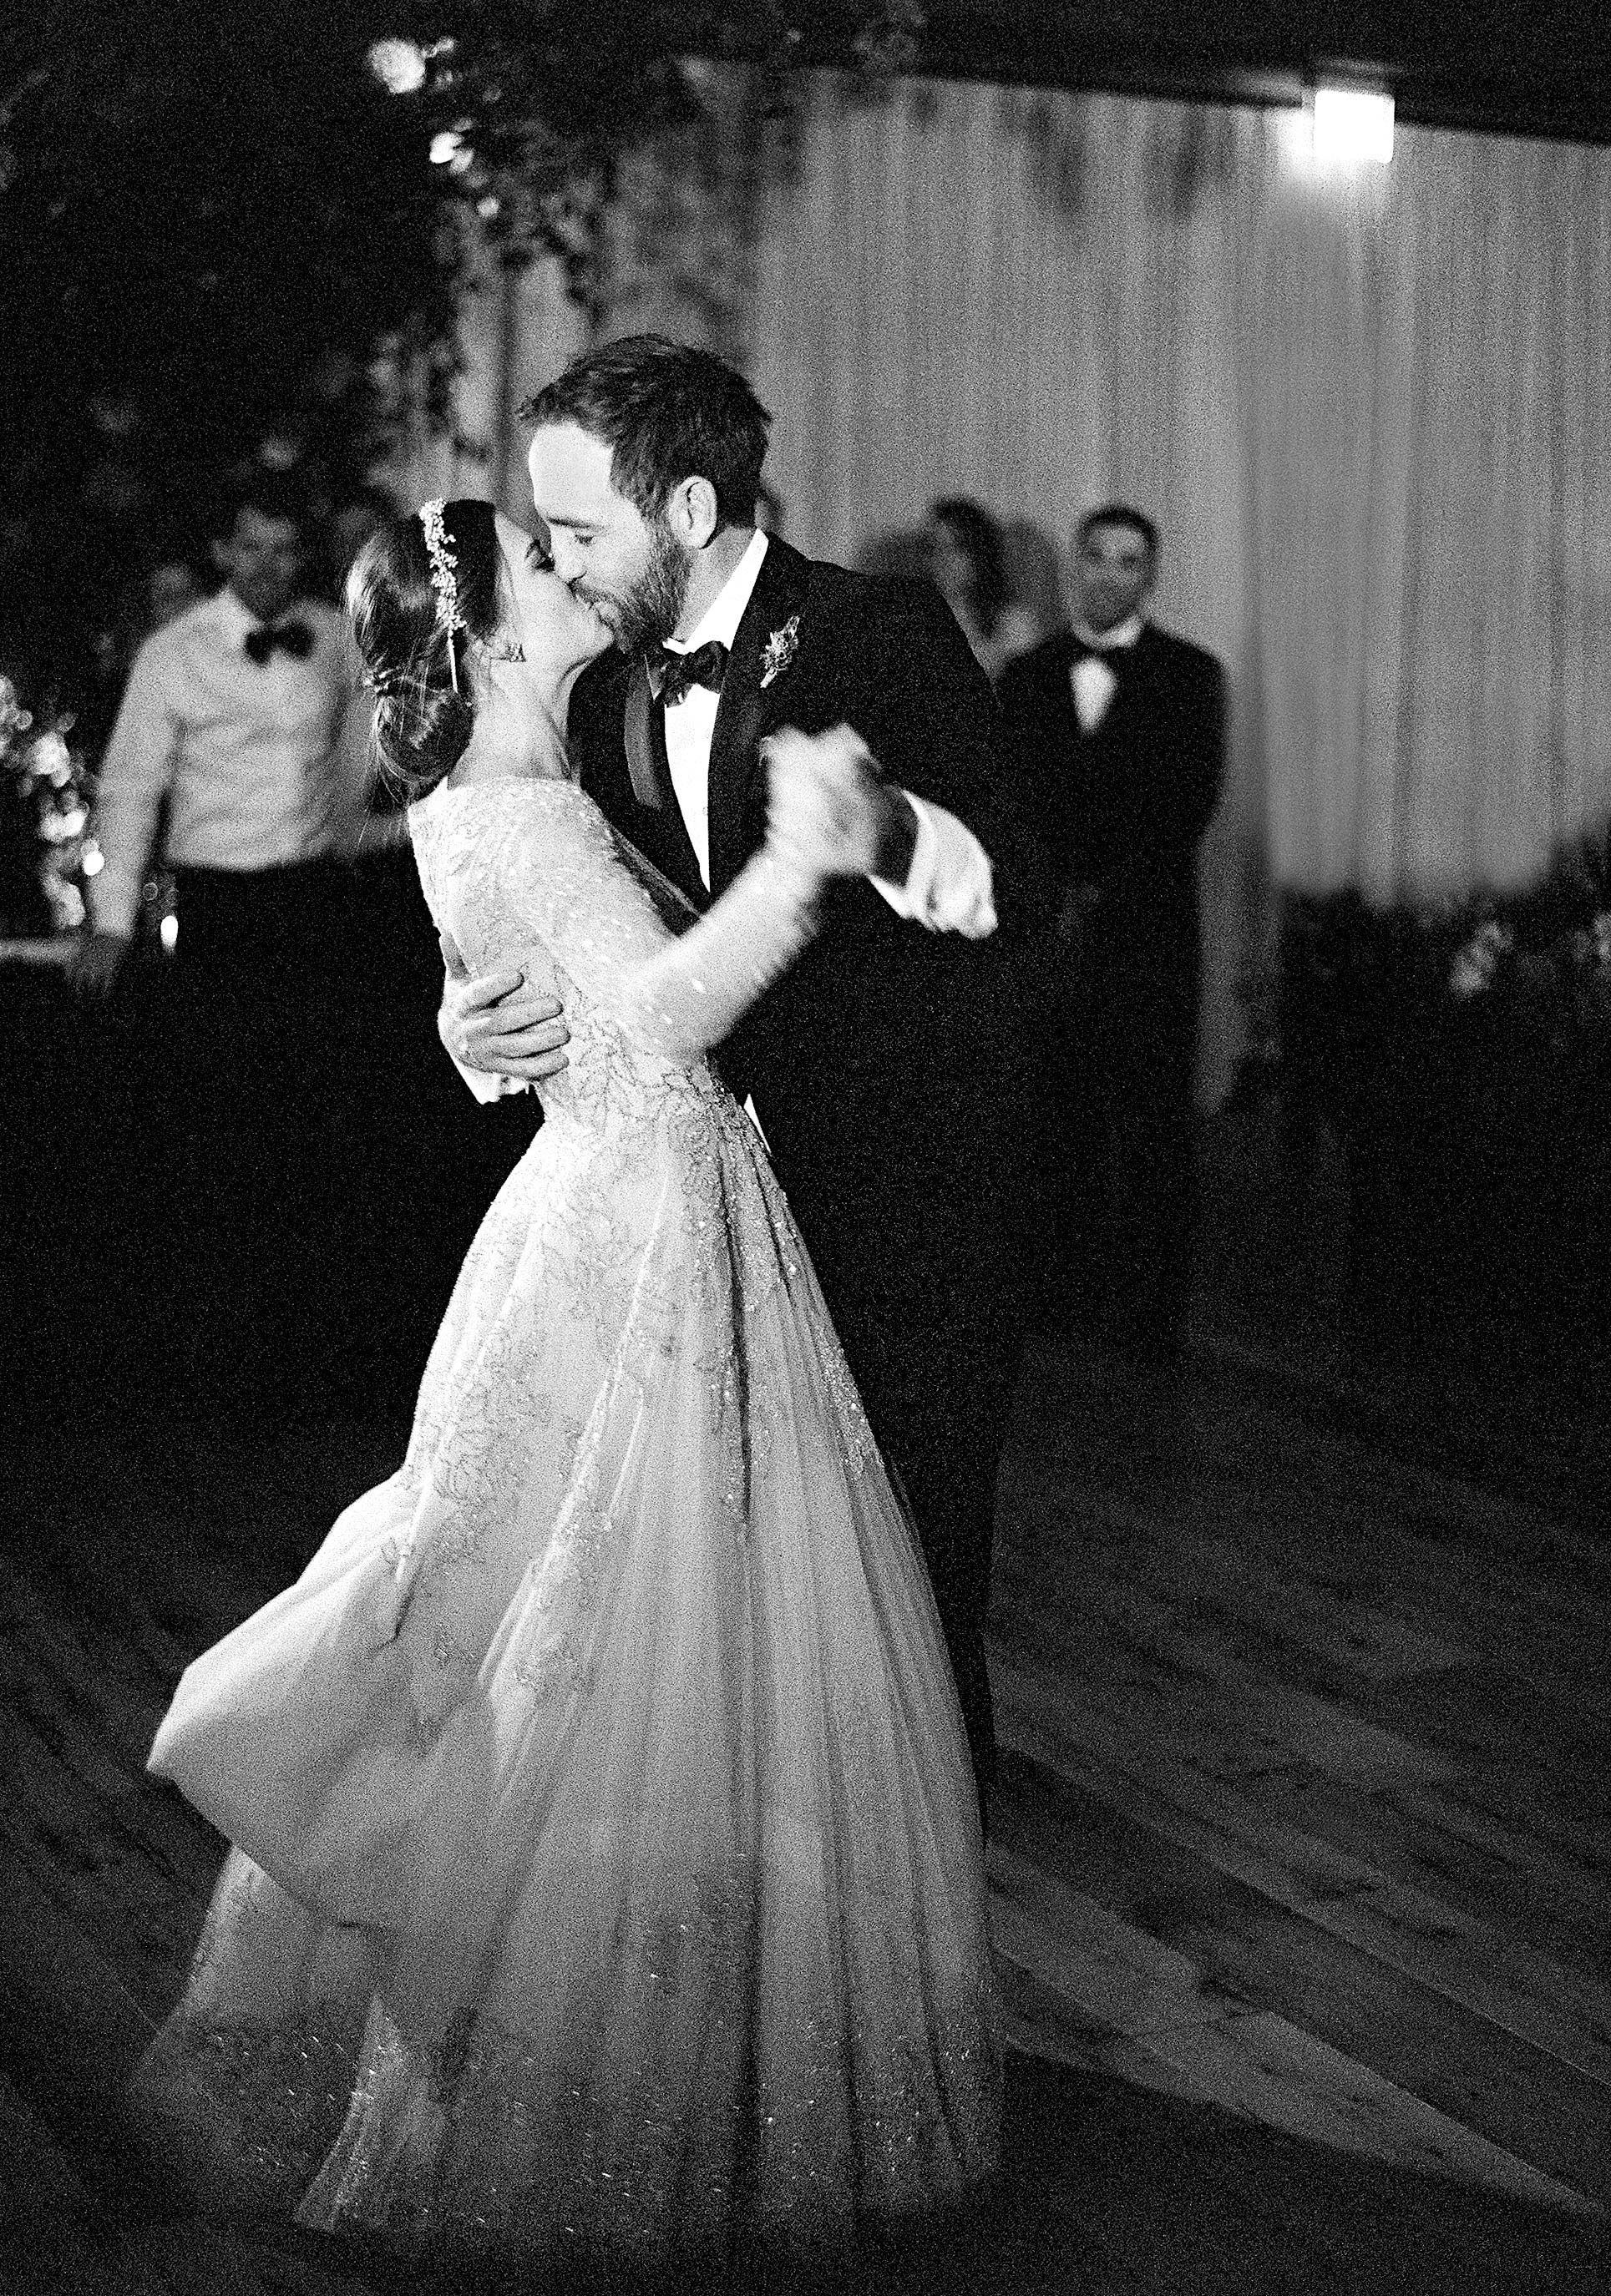 Classic First Dance Songs That'll Resonate with All of Your Wedding Guests